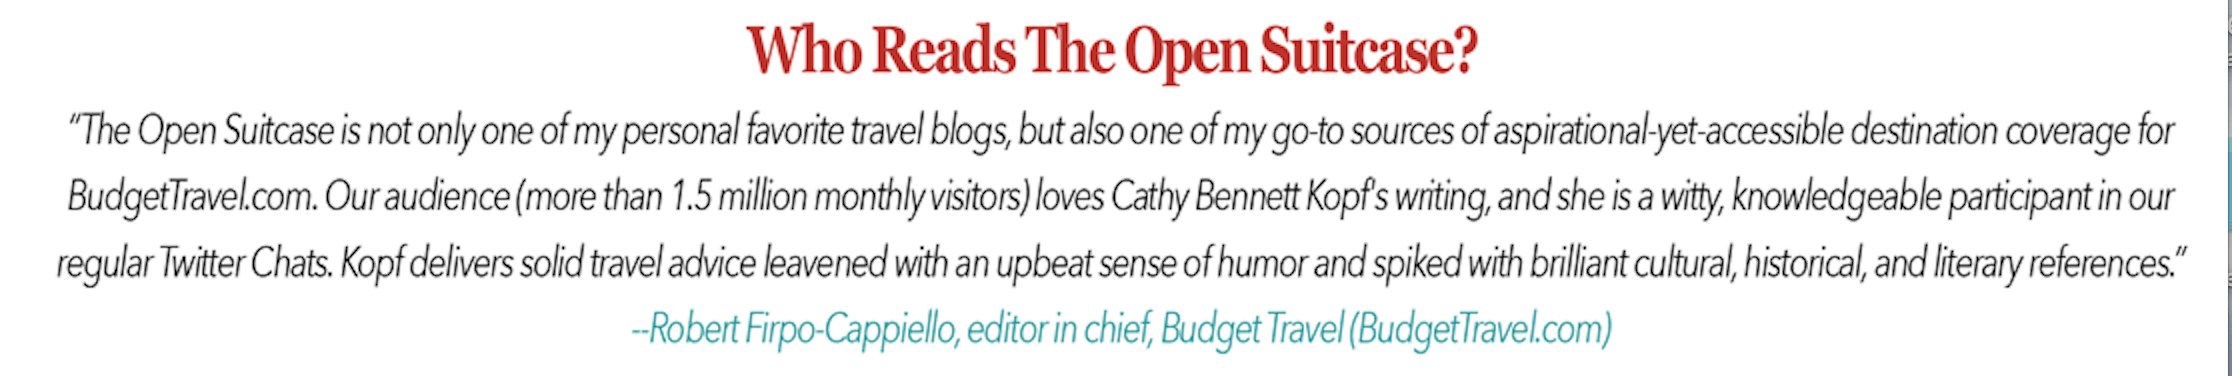 Endorsement of Cathy Bennett Kopf, Hudson Valley Travel Writer and Owner/Editor of The Open Suitcase, a travel and lifestyle blog, by Robert Firpo-Cappiello, Editor in Chief of Budget Travel